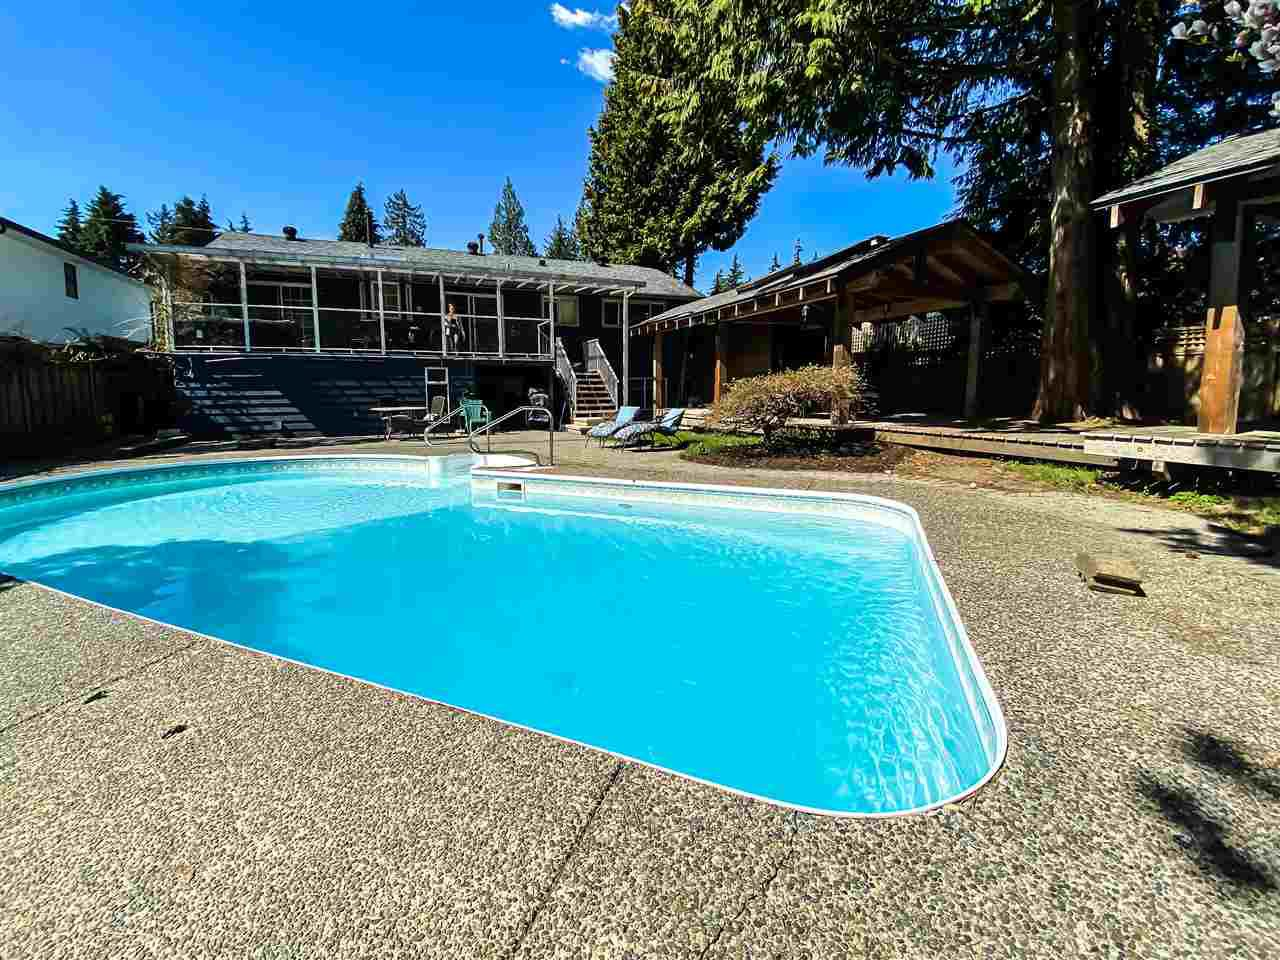 Photo 2: Photos: 2672 KILMARNOCK CRESCENT in North Vancouver: Westlynn Terrace House for sale : MLS®# R2450668